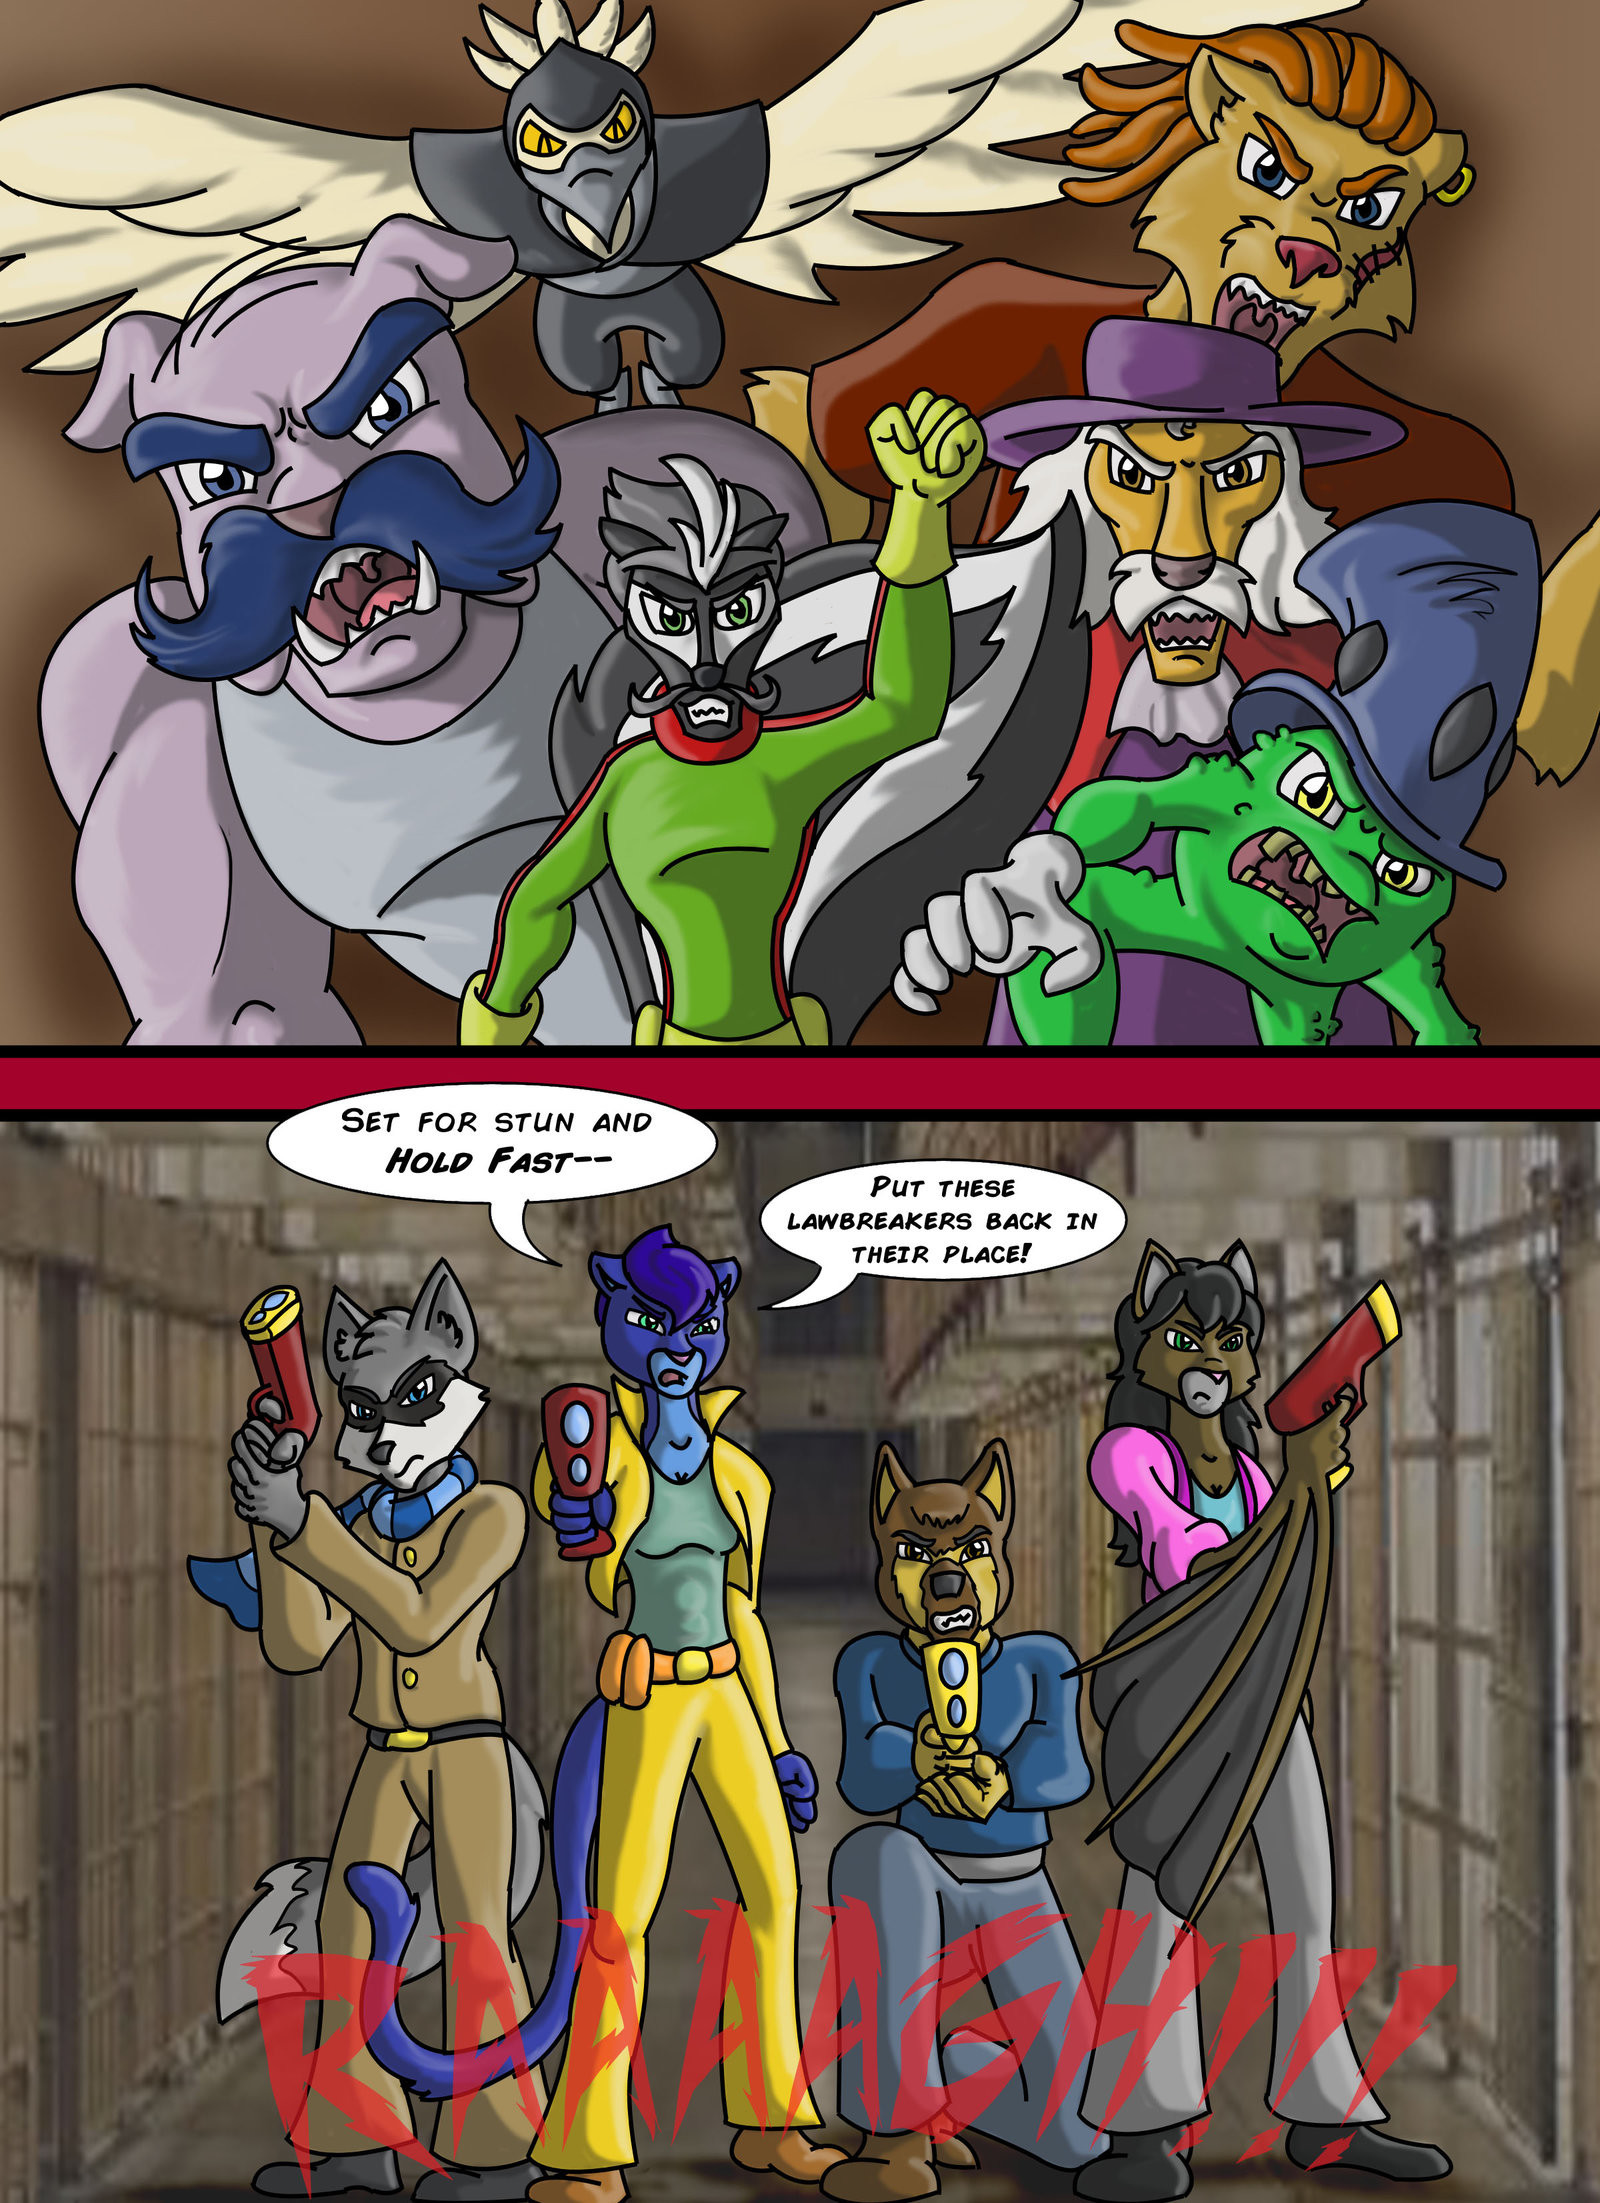 … ConnorDavidson Sly Cooper: Thief of Virtue Page 161 by ConnorDavidson